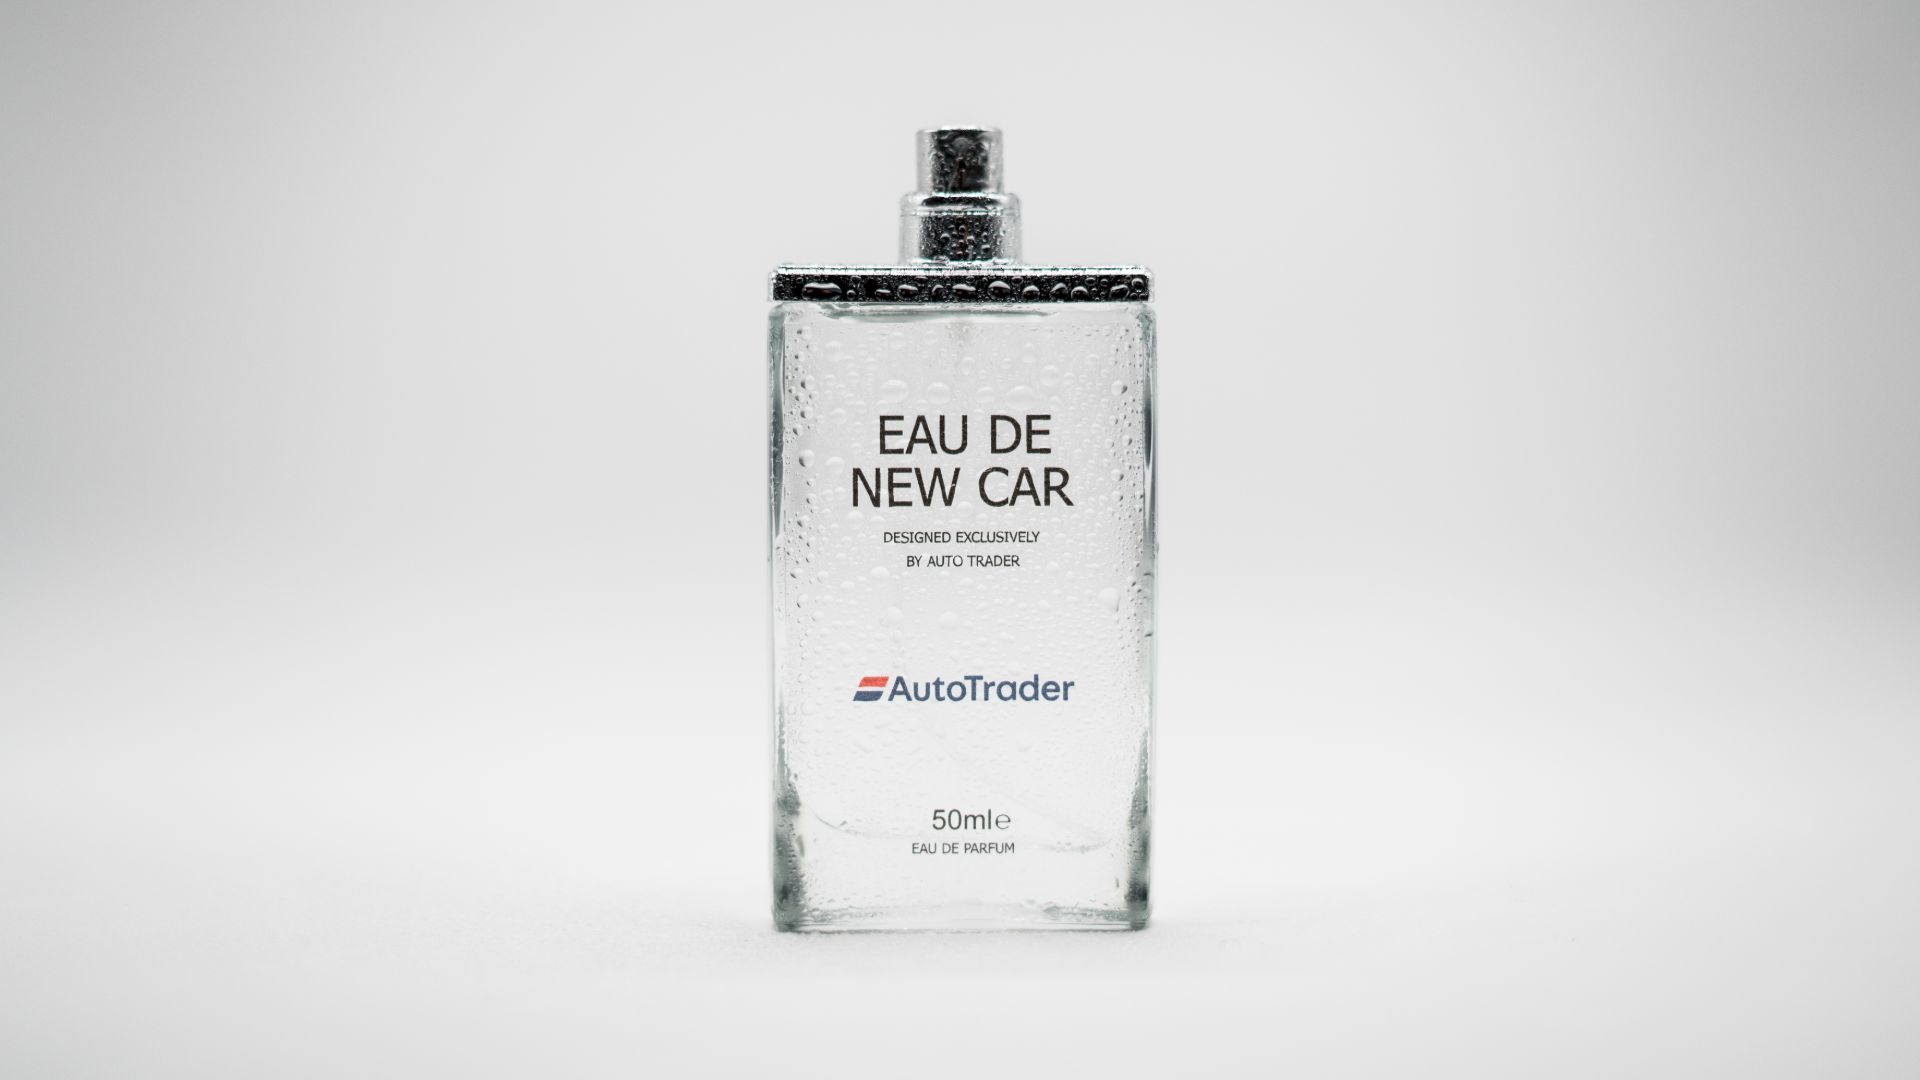 Auto Trader Au de New Car fragrance